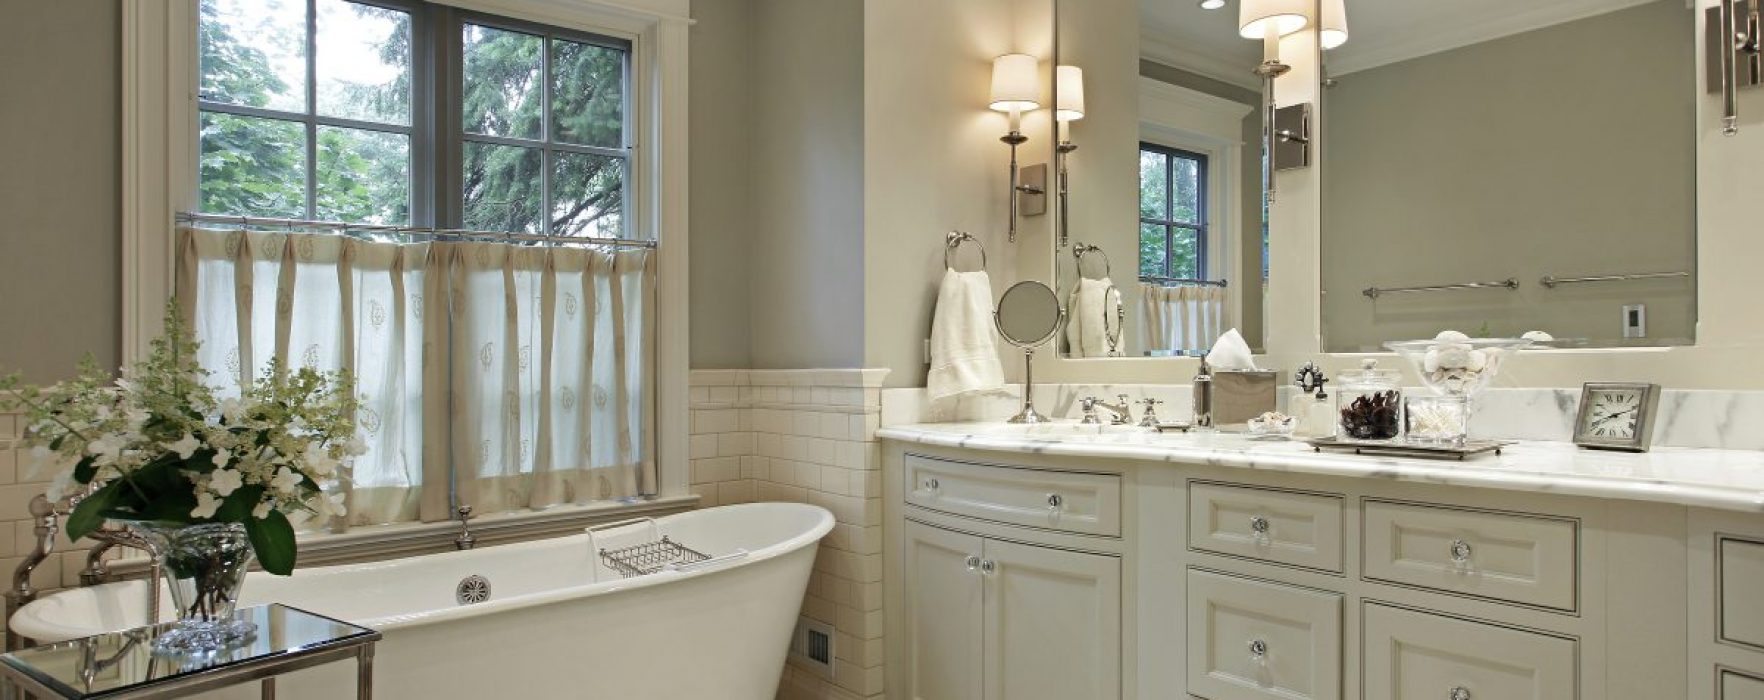 Bathroom Makeovers Better Homes And Gardens 4 ways to create the effect of a luxurious bathroom makeover